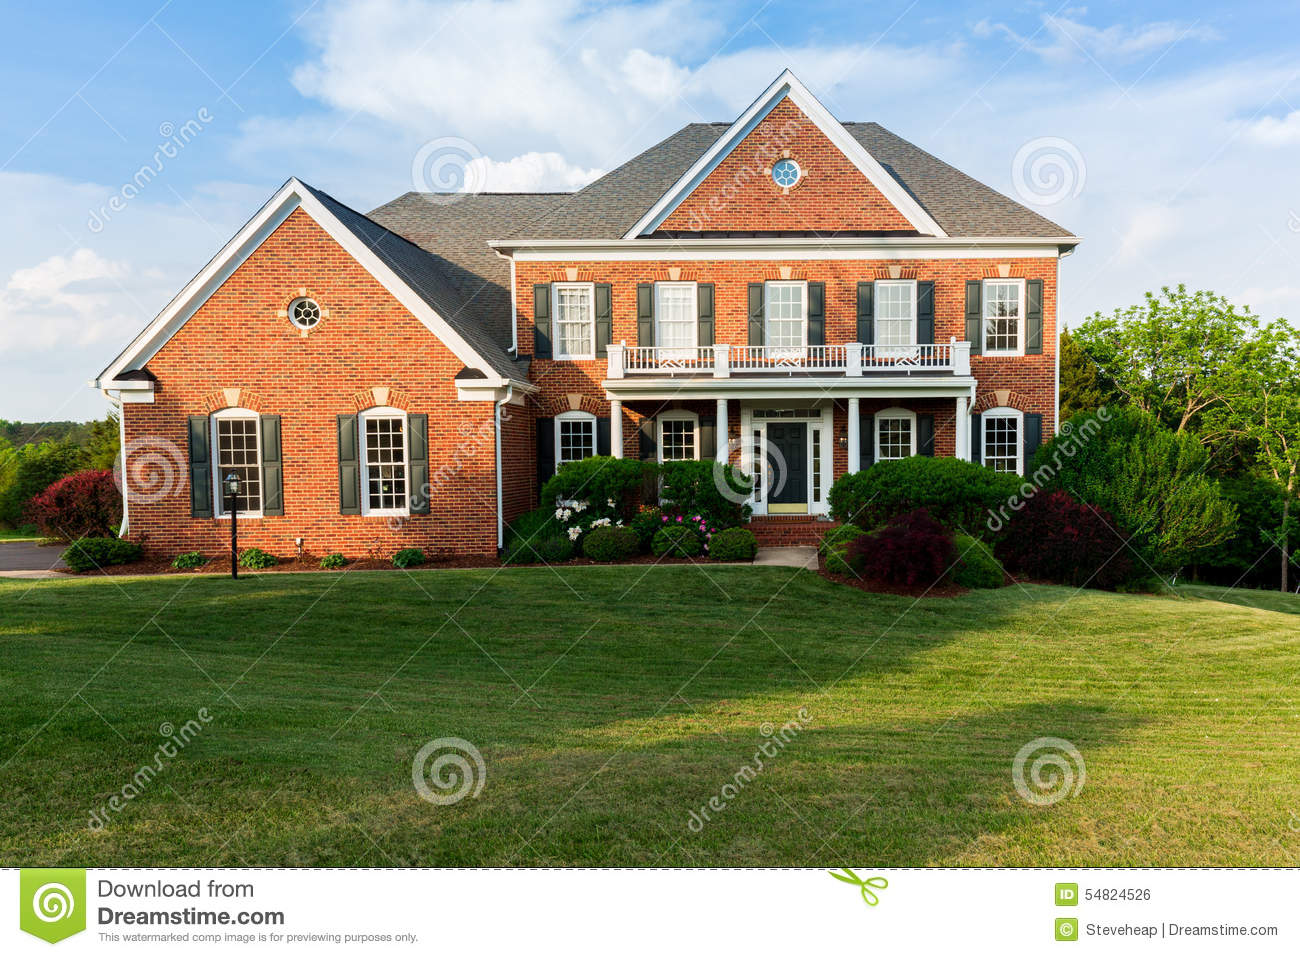 Single Home Front Elevation : Front elevation large single family home stock photo